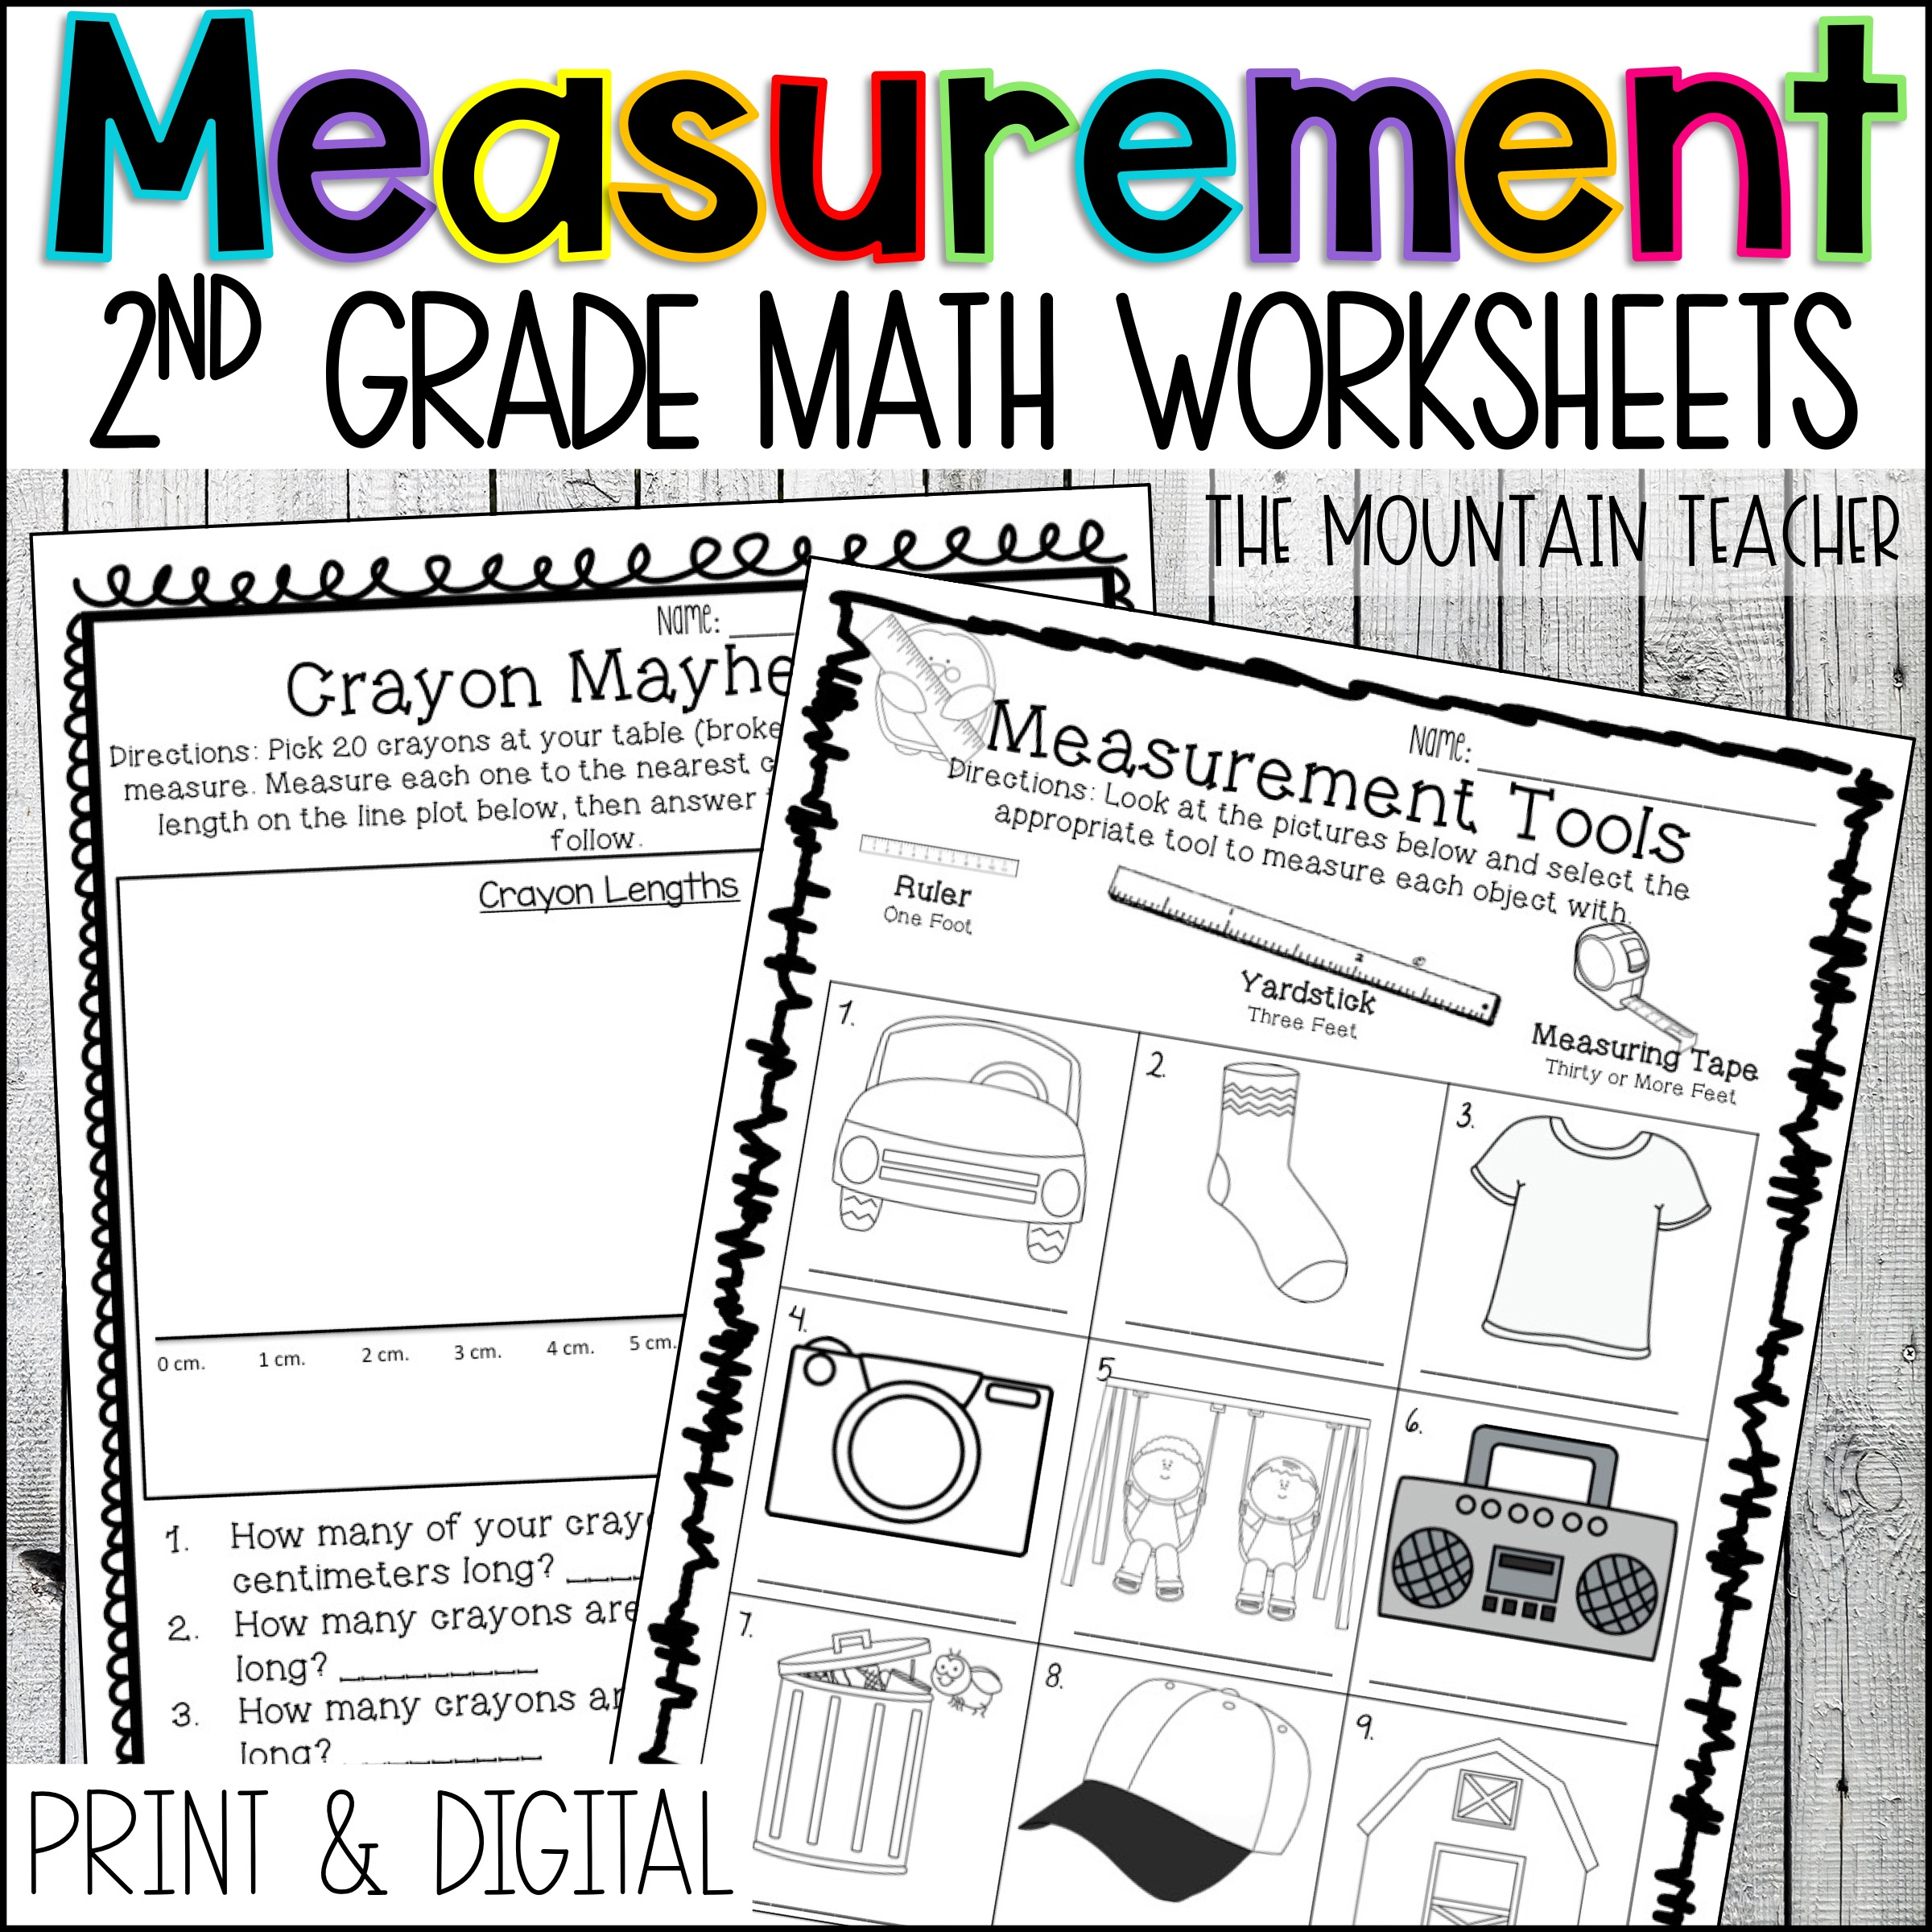 Measurement Worksheets for 2nd Grade By The Mountain Teacher